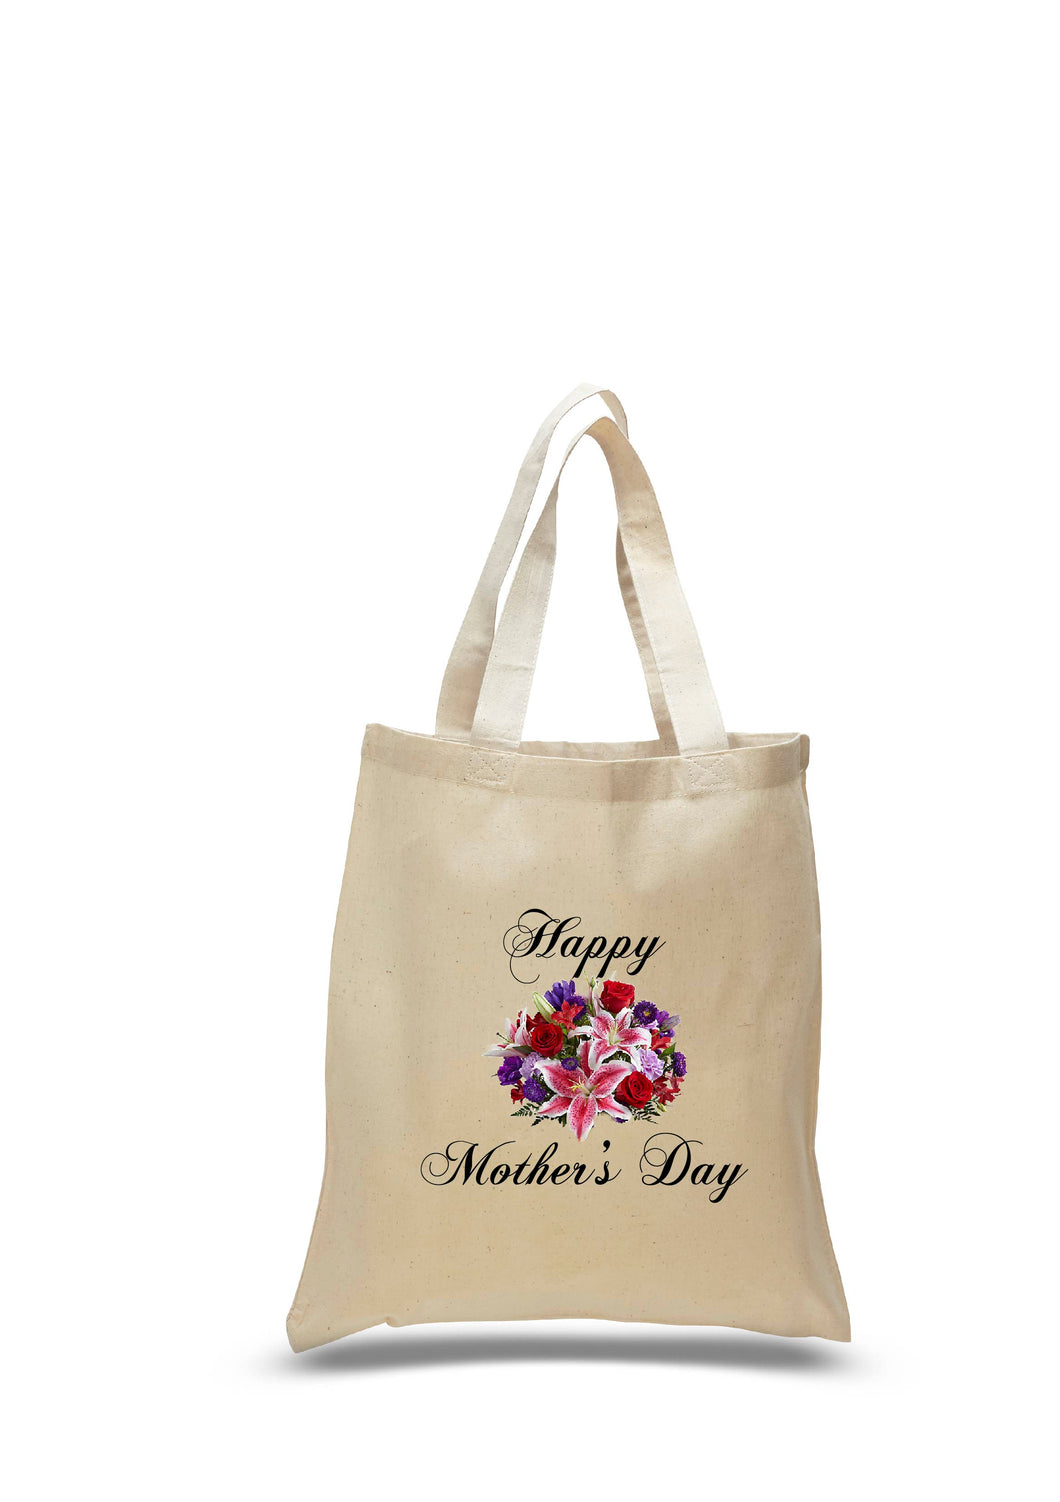 Happy Mother's Day Tote